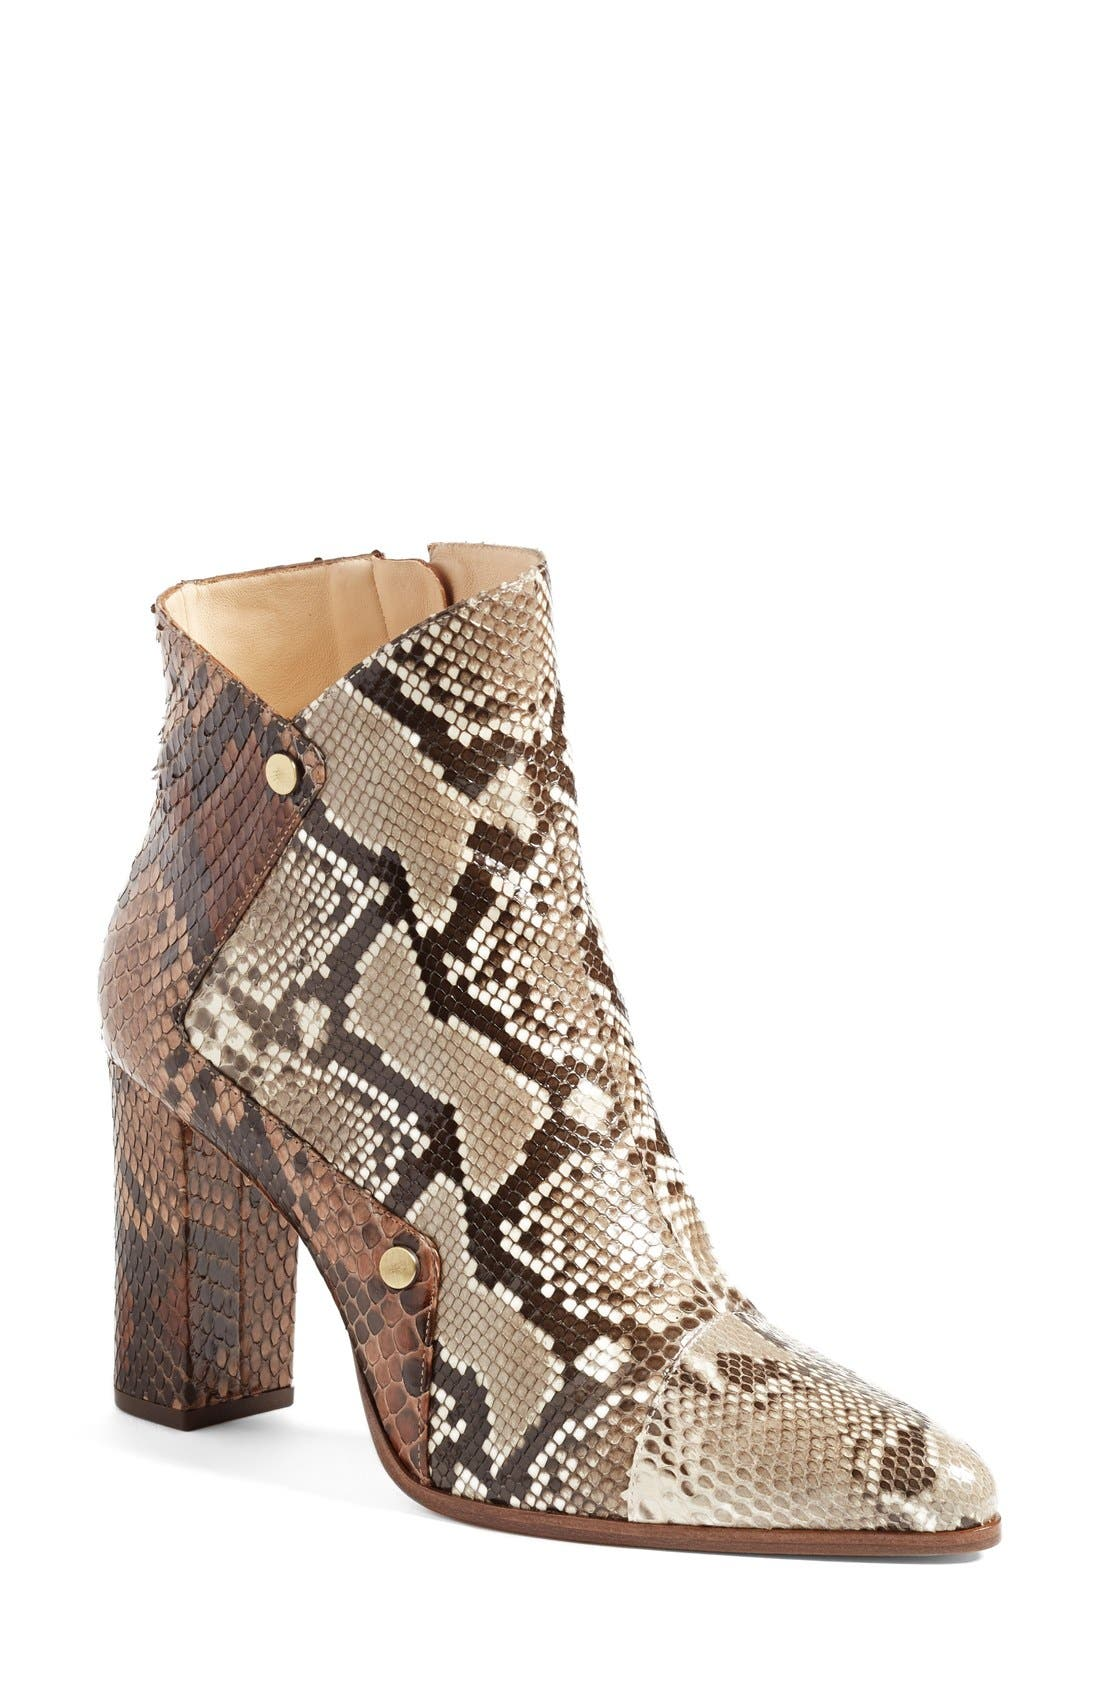 'Kendal' Genuine Python Skin Pointy Toe Bootie,                         Main,                         color, 250